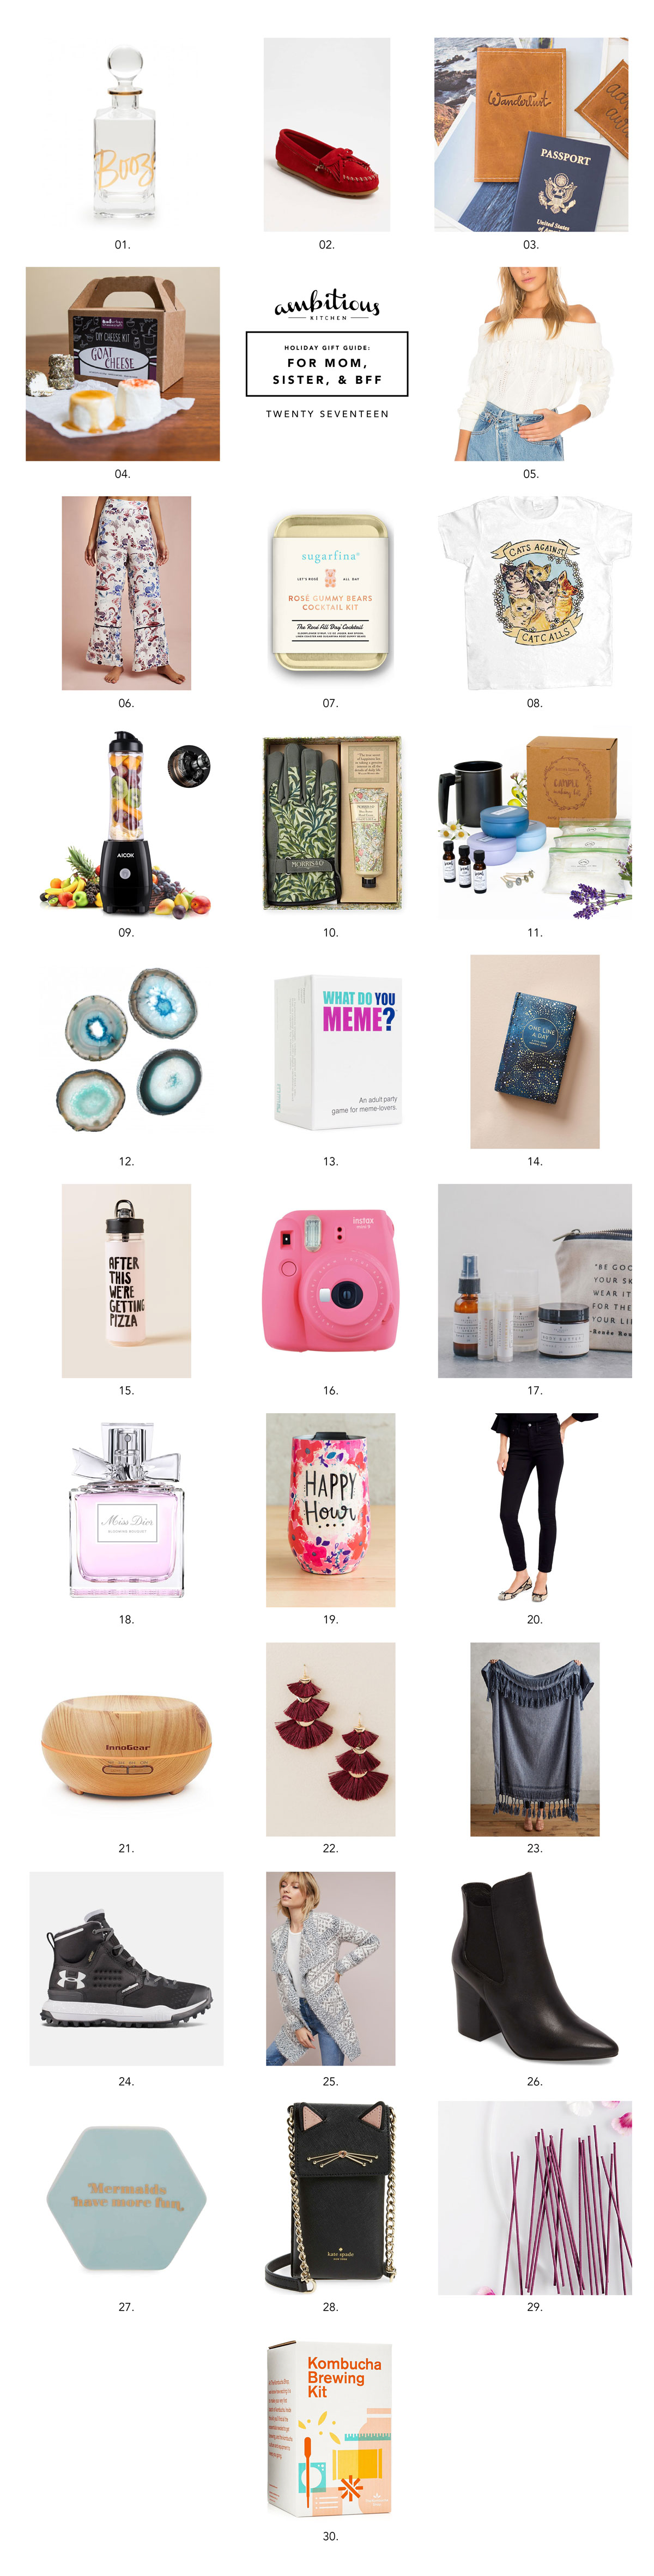 ak gift guide 2017 unique gifts for your mom sister and best